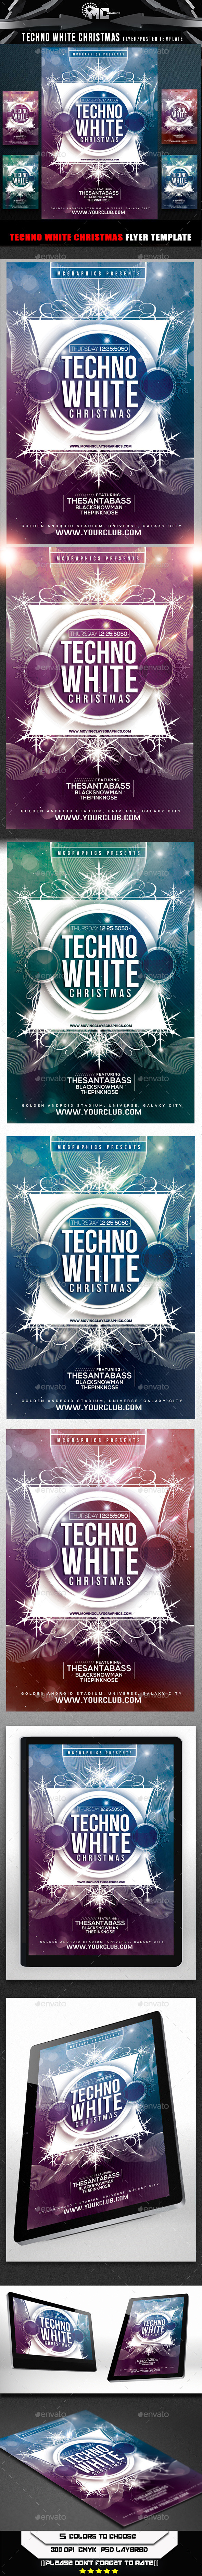 GraphicRiver Techno White Christmas Flyer Template 9544058